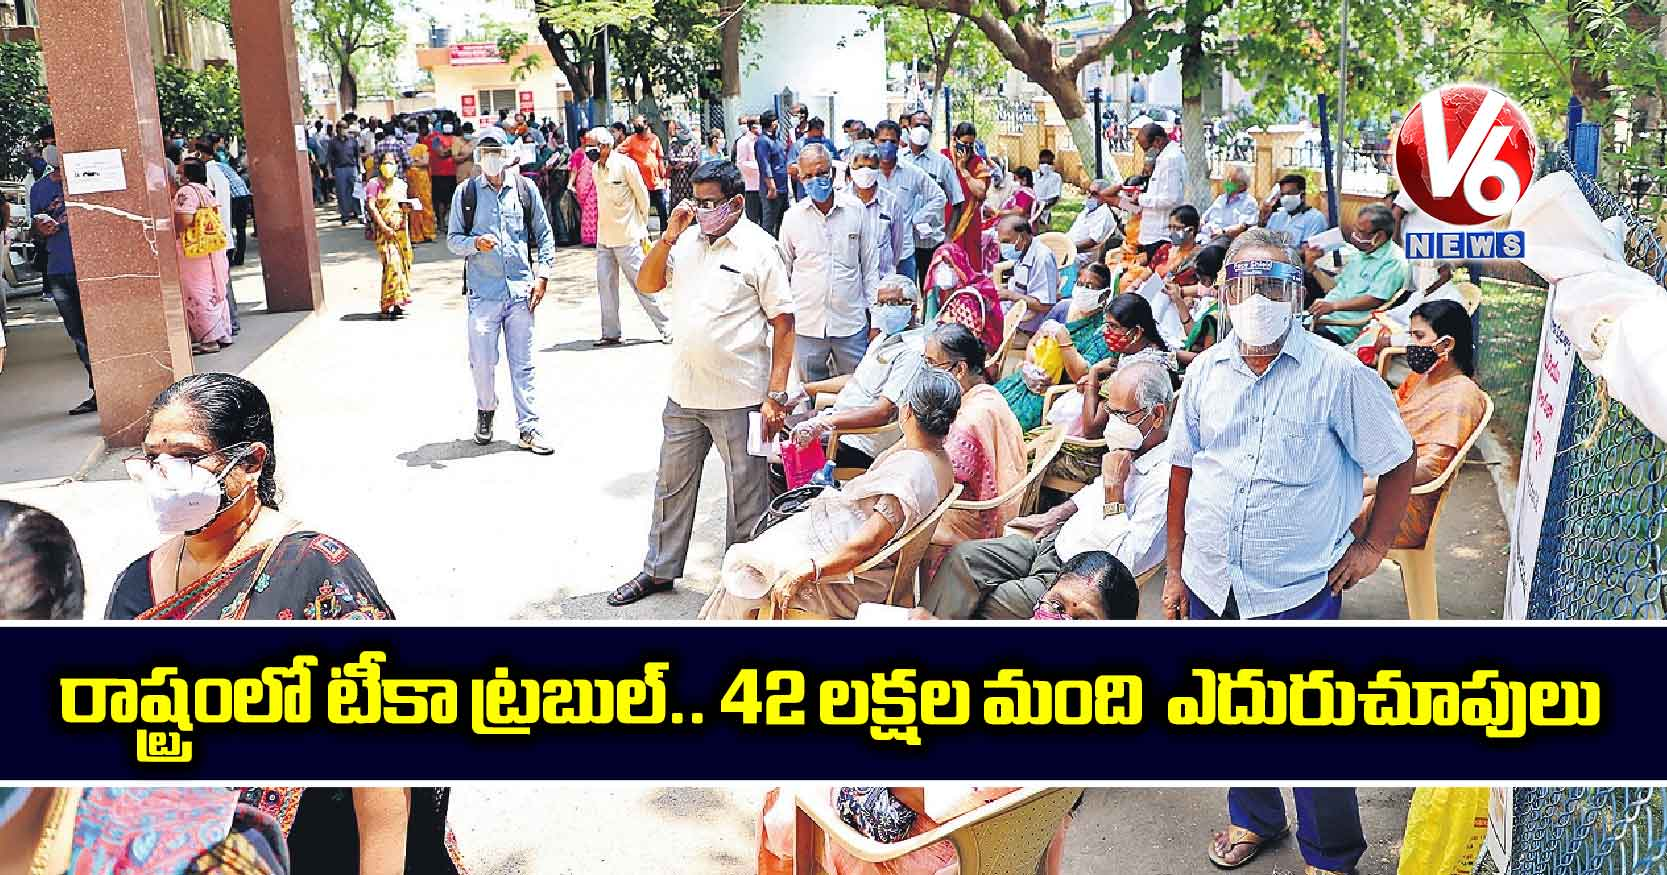 vaccination-trouble-in-the-telangana-..-42-lakh-people-are-waiting-for-vaccine_se0KZmSpnV.jpg